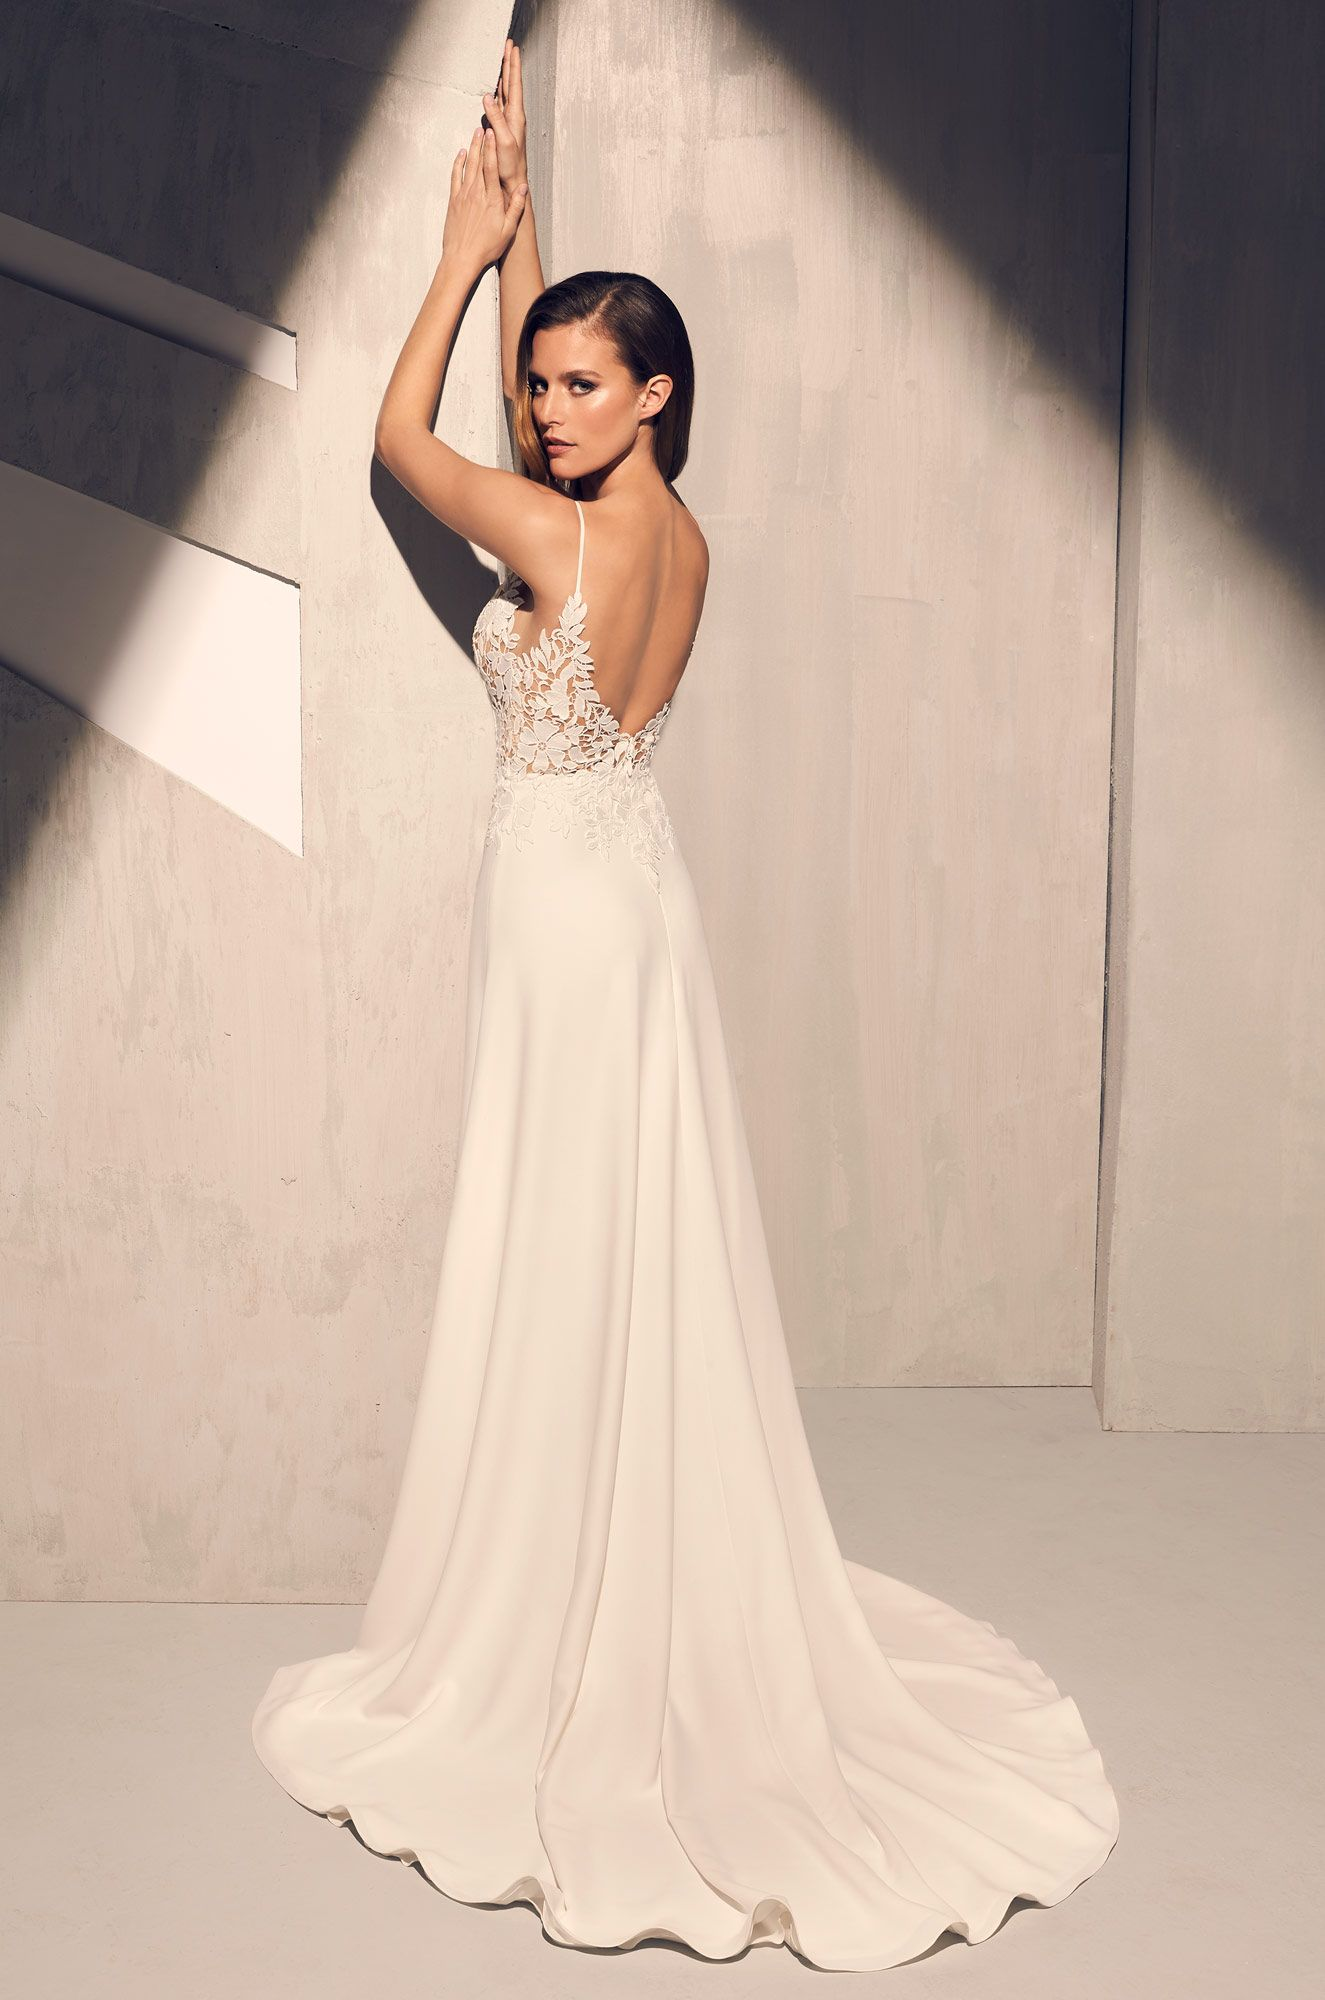 Sheer floral bodice wedding dress style in mikaella